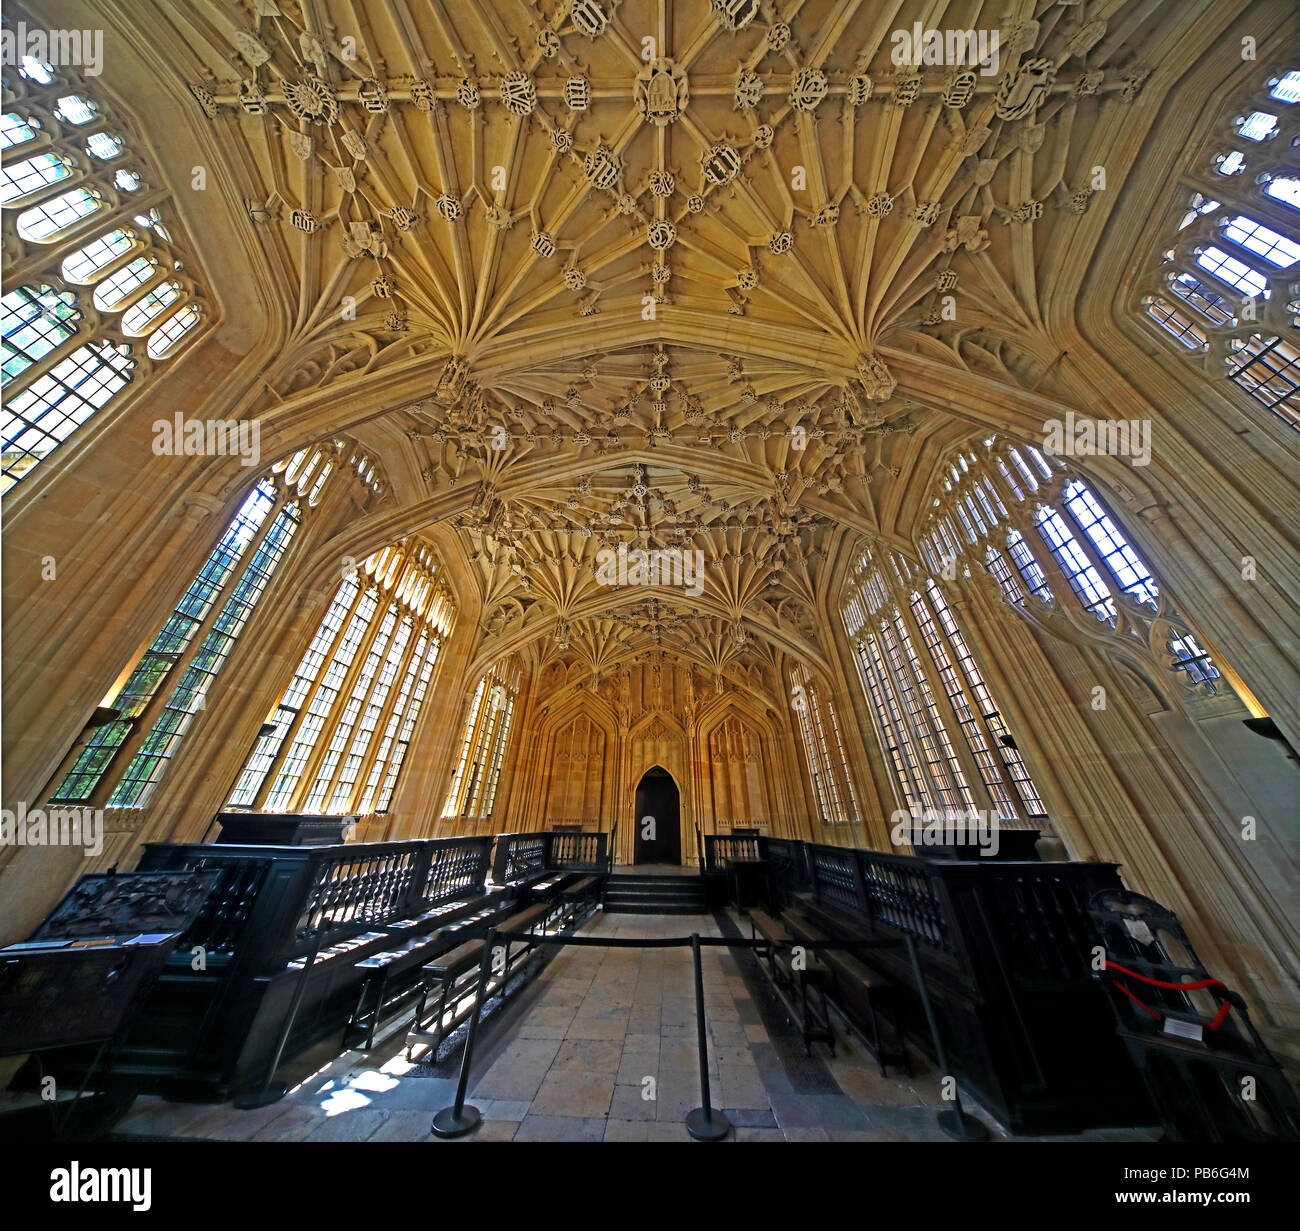 Divinity School, Bodleian Library, Broad Street, Oxford, Cottswolds, South East England, UK - Stock Image